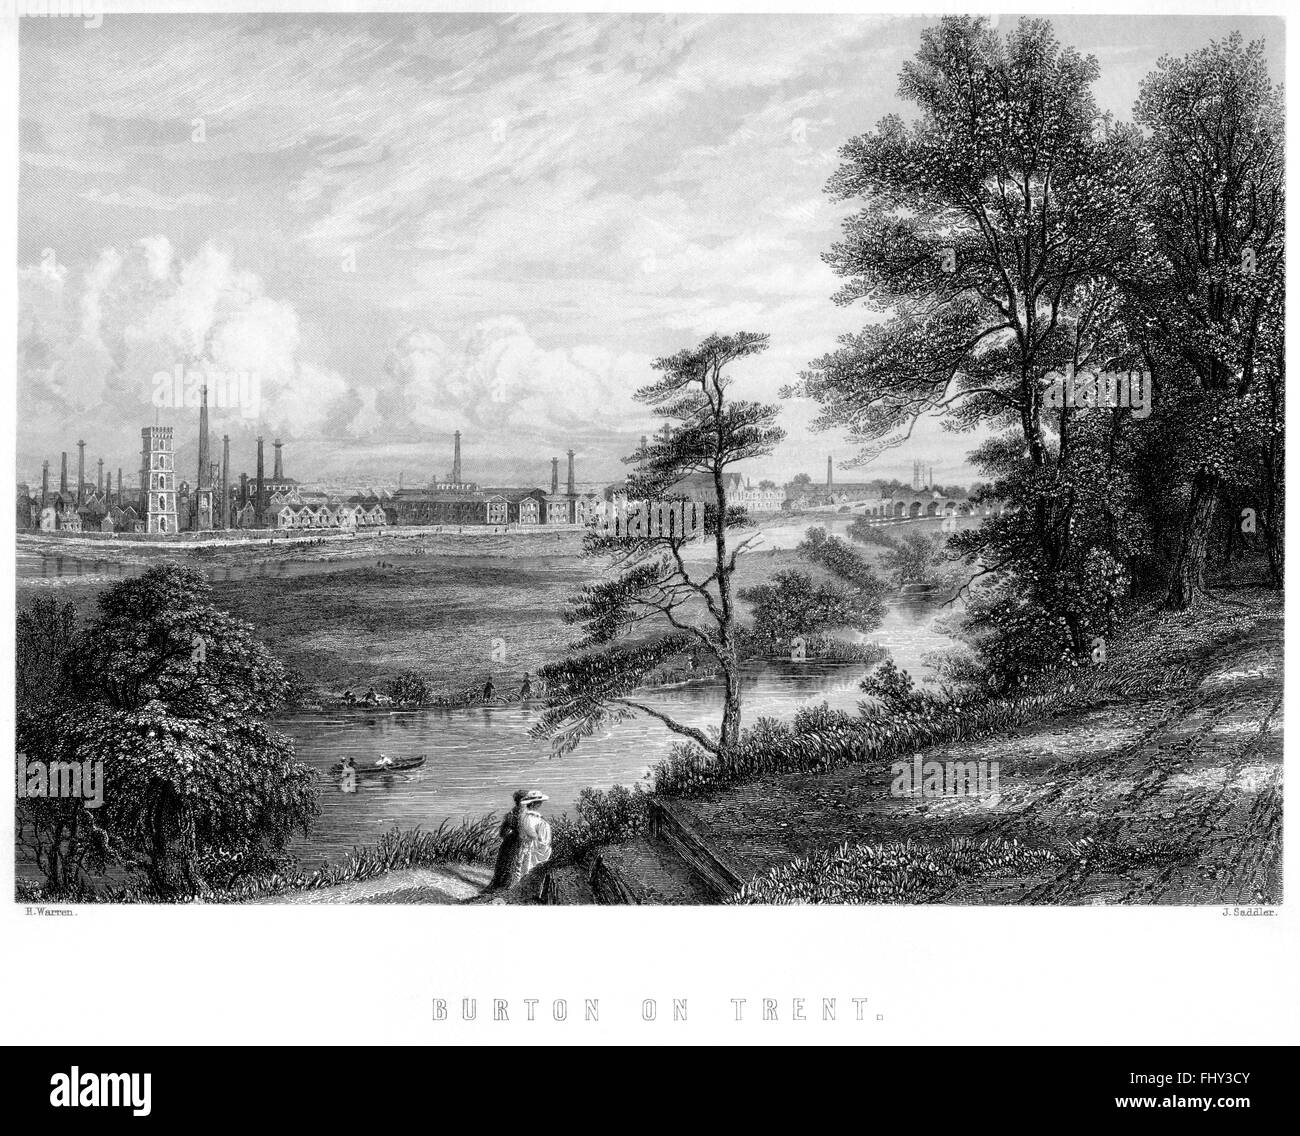 An engraving of Burton on Trent scanned at high resolution from a book printed in 1880. Believed copyright free. Stock Photo